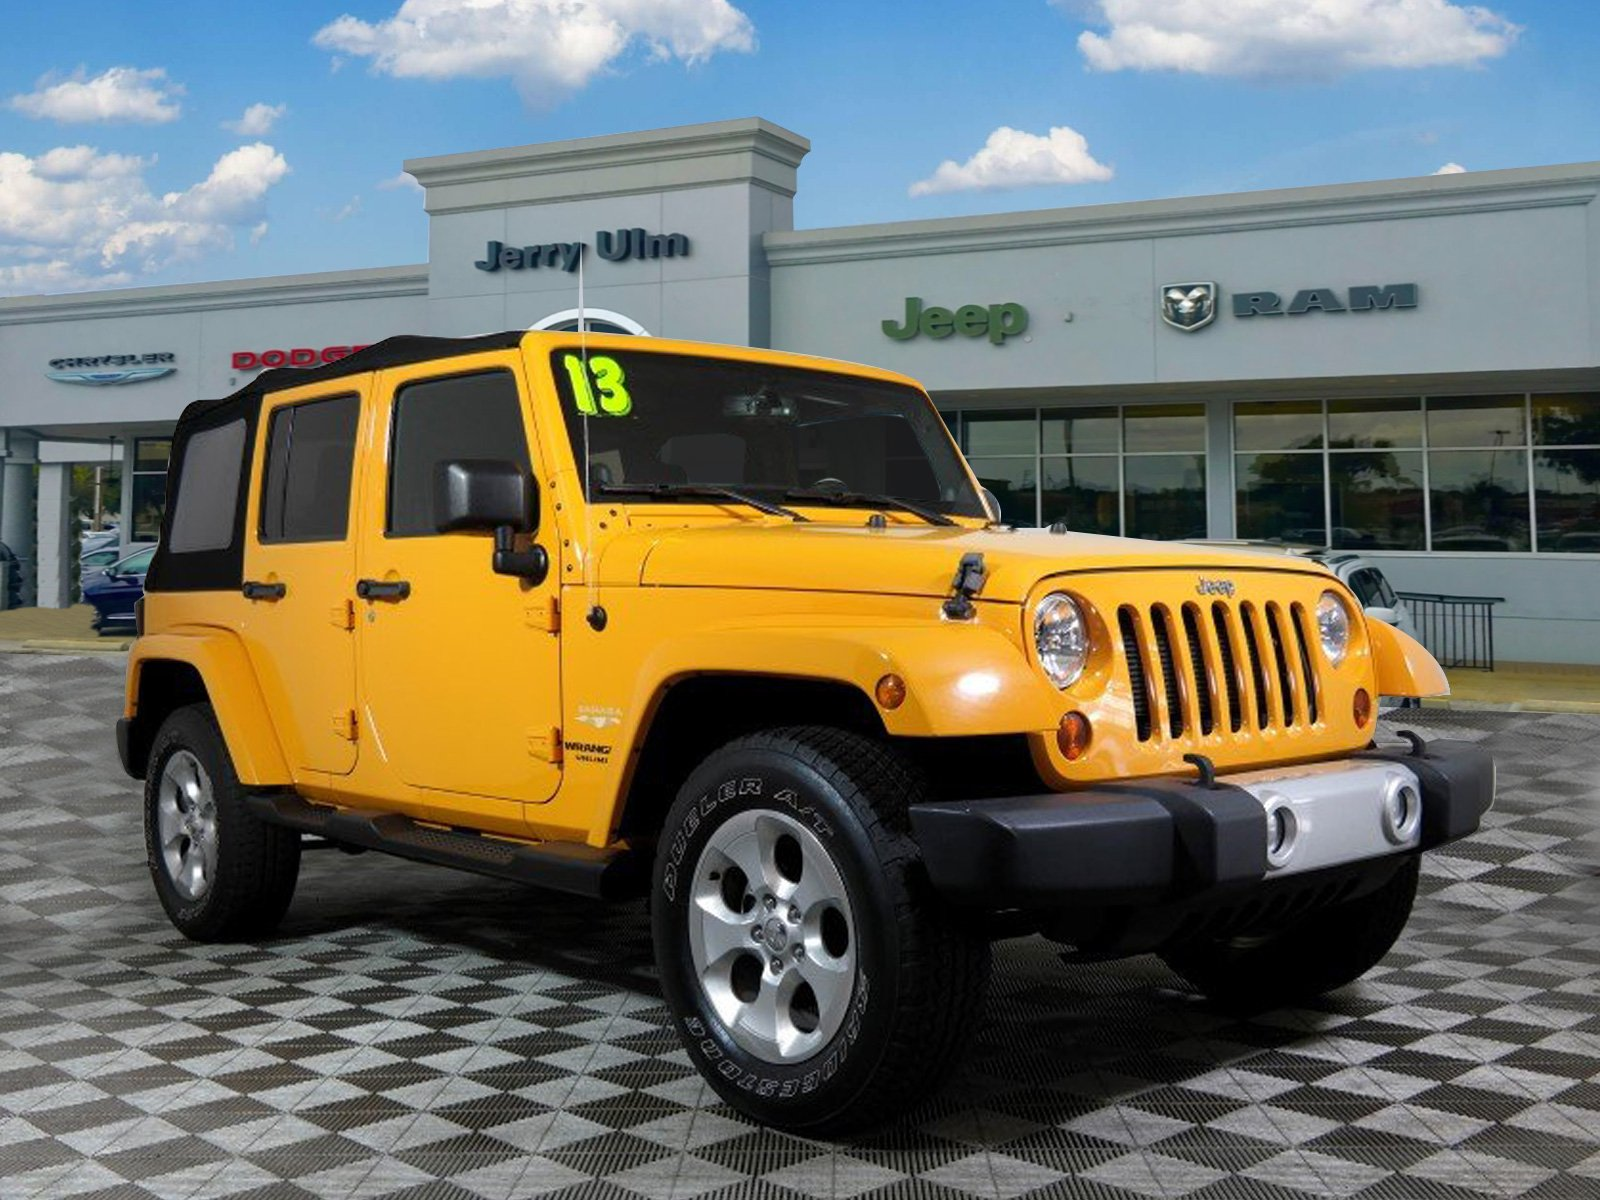 Jeep Wrangler on willys mb, dodge durango, 2013 jeep phoenix, jeep commander, 2013 jeep sorento, jeep compass, 2013 jeep interior, toyota 4runner, jeep cherokee, jeep renegade, 2013 jeep cherokee laredo, 2013 jeep comanche, jeep liberty, 2013 jeep cj7, jeep patriot, 2013 jeep compass, jeep comanche, ford bronco, 2013 jeep liberty, 2013 jeep convertible, 2013 jeep 10th anniversary anvil, 2013 jeep rubicon, 2013 jeep explorer, 2013 jeep patriot, toyota land cruiser, ford explorer, 2013 jeep colors, 2013 jeep cj8, custom black wrangler, 2013 jeep rogue, 2013 jeep commander, 2013 jeep grand cherokee, jeep cj, jeep gladiator, toyota tacoma, jeep wagoneer, land rover defender, jeep grand cherokee, dodge dakota,